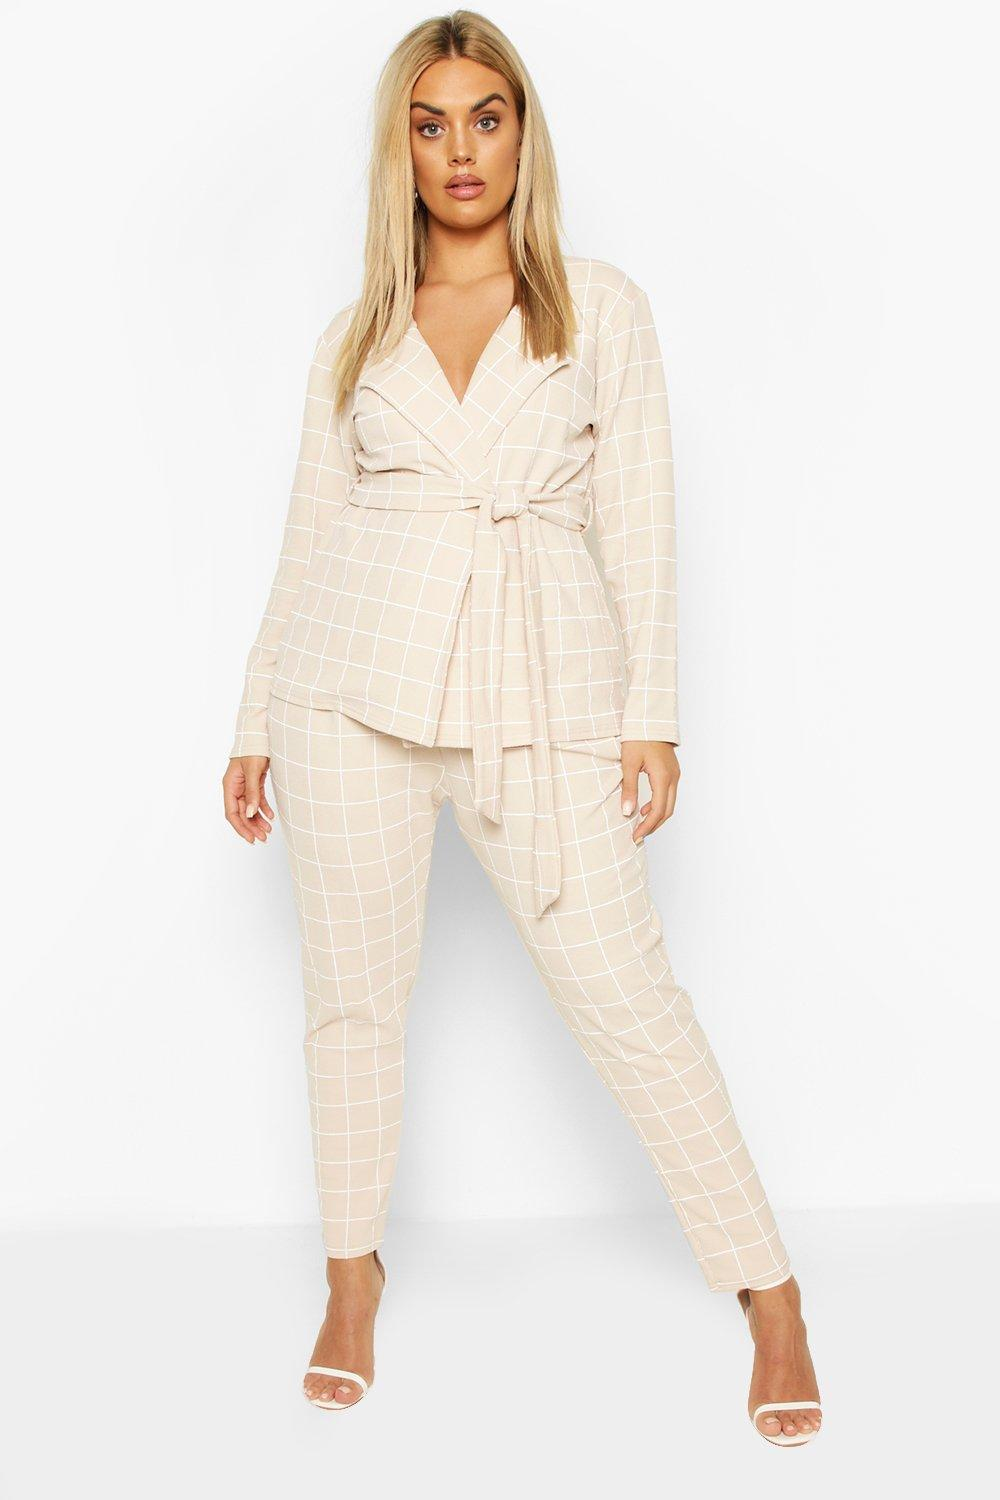 boohoo Womens Plus Grid Check Blazer & Trouser Co-Ord - Beige - 18, Beige